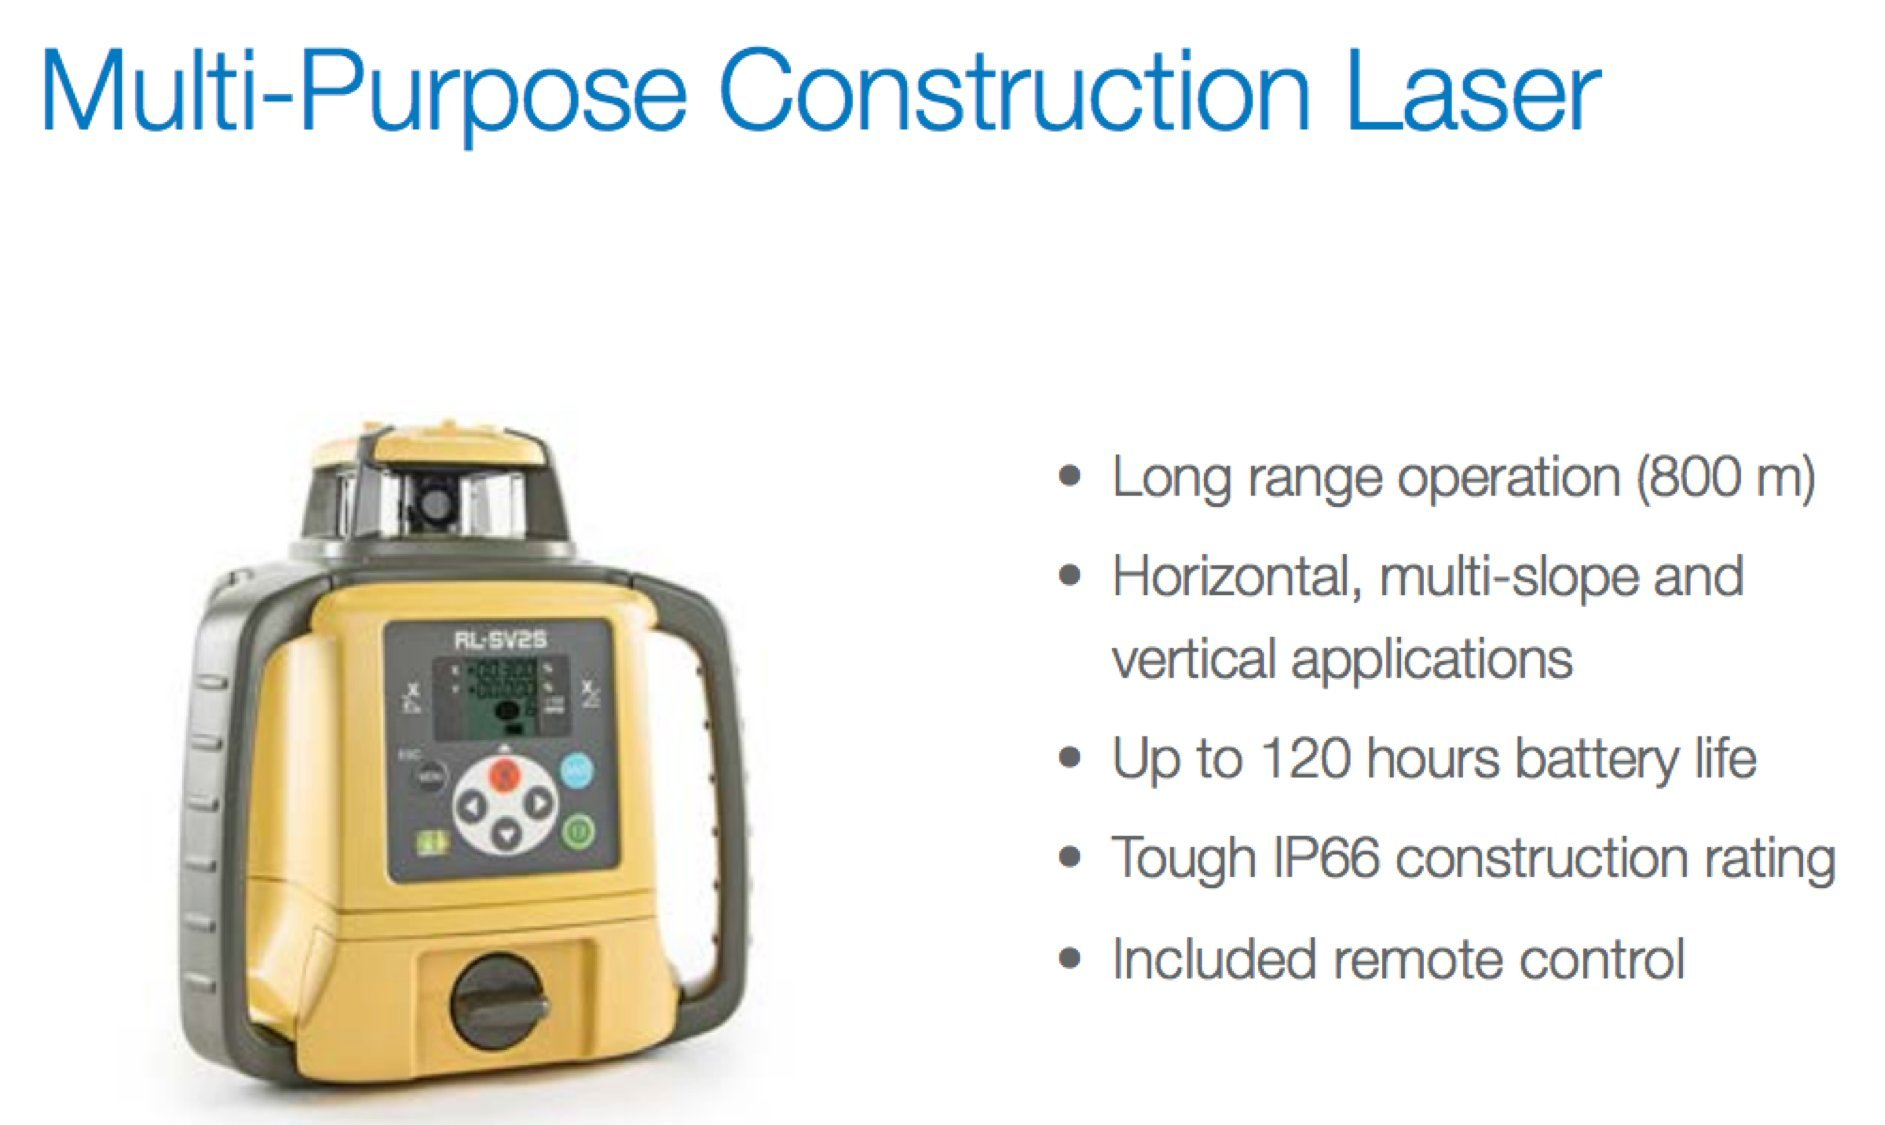 Topcon RL-SV2S Dual Grade Rotary Laser with BONUS EDEN Field Book | IP66 Rating Drop, Dust, Water Resistant | 800m Construction Laser | Includes LS-80L Receiver, Detector Holder, Hard Case by TOPCON (Image #5)